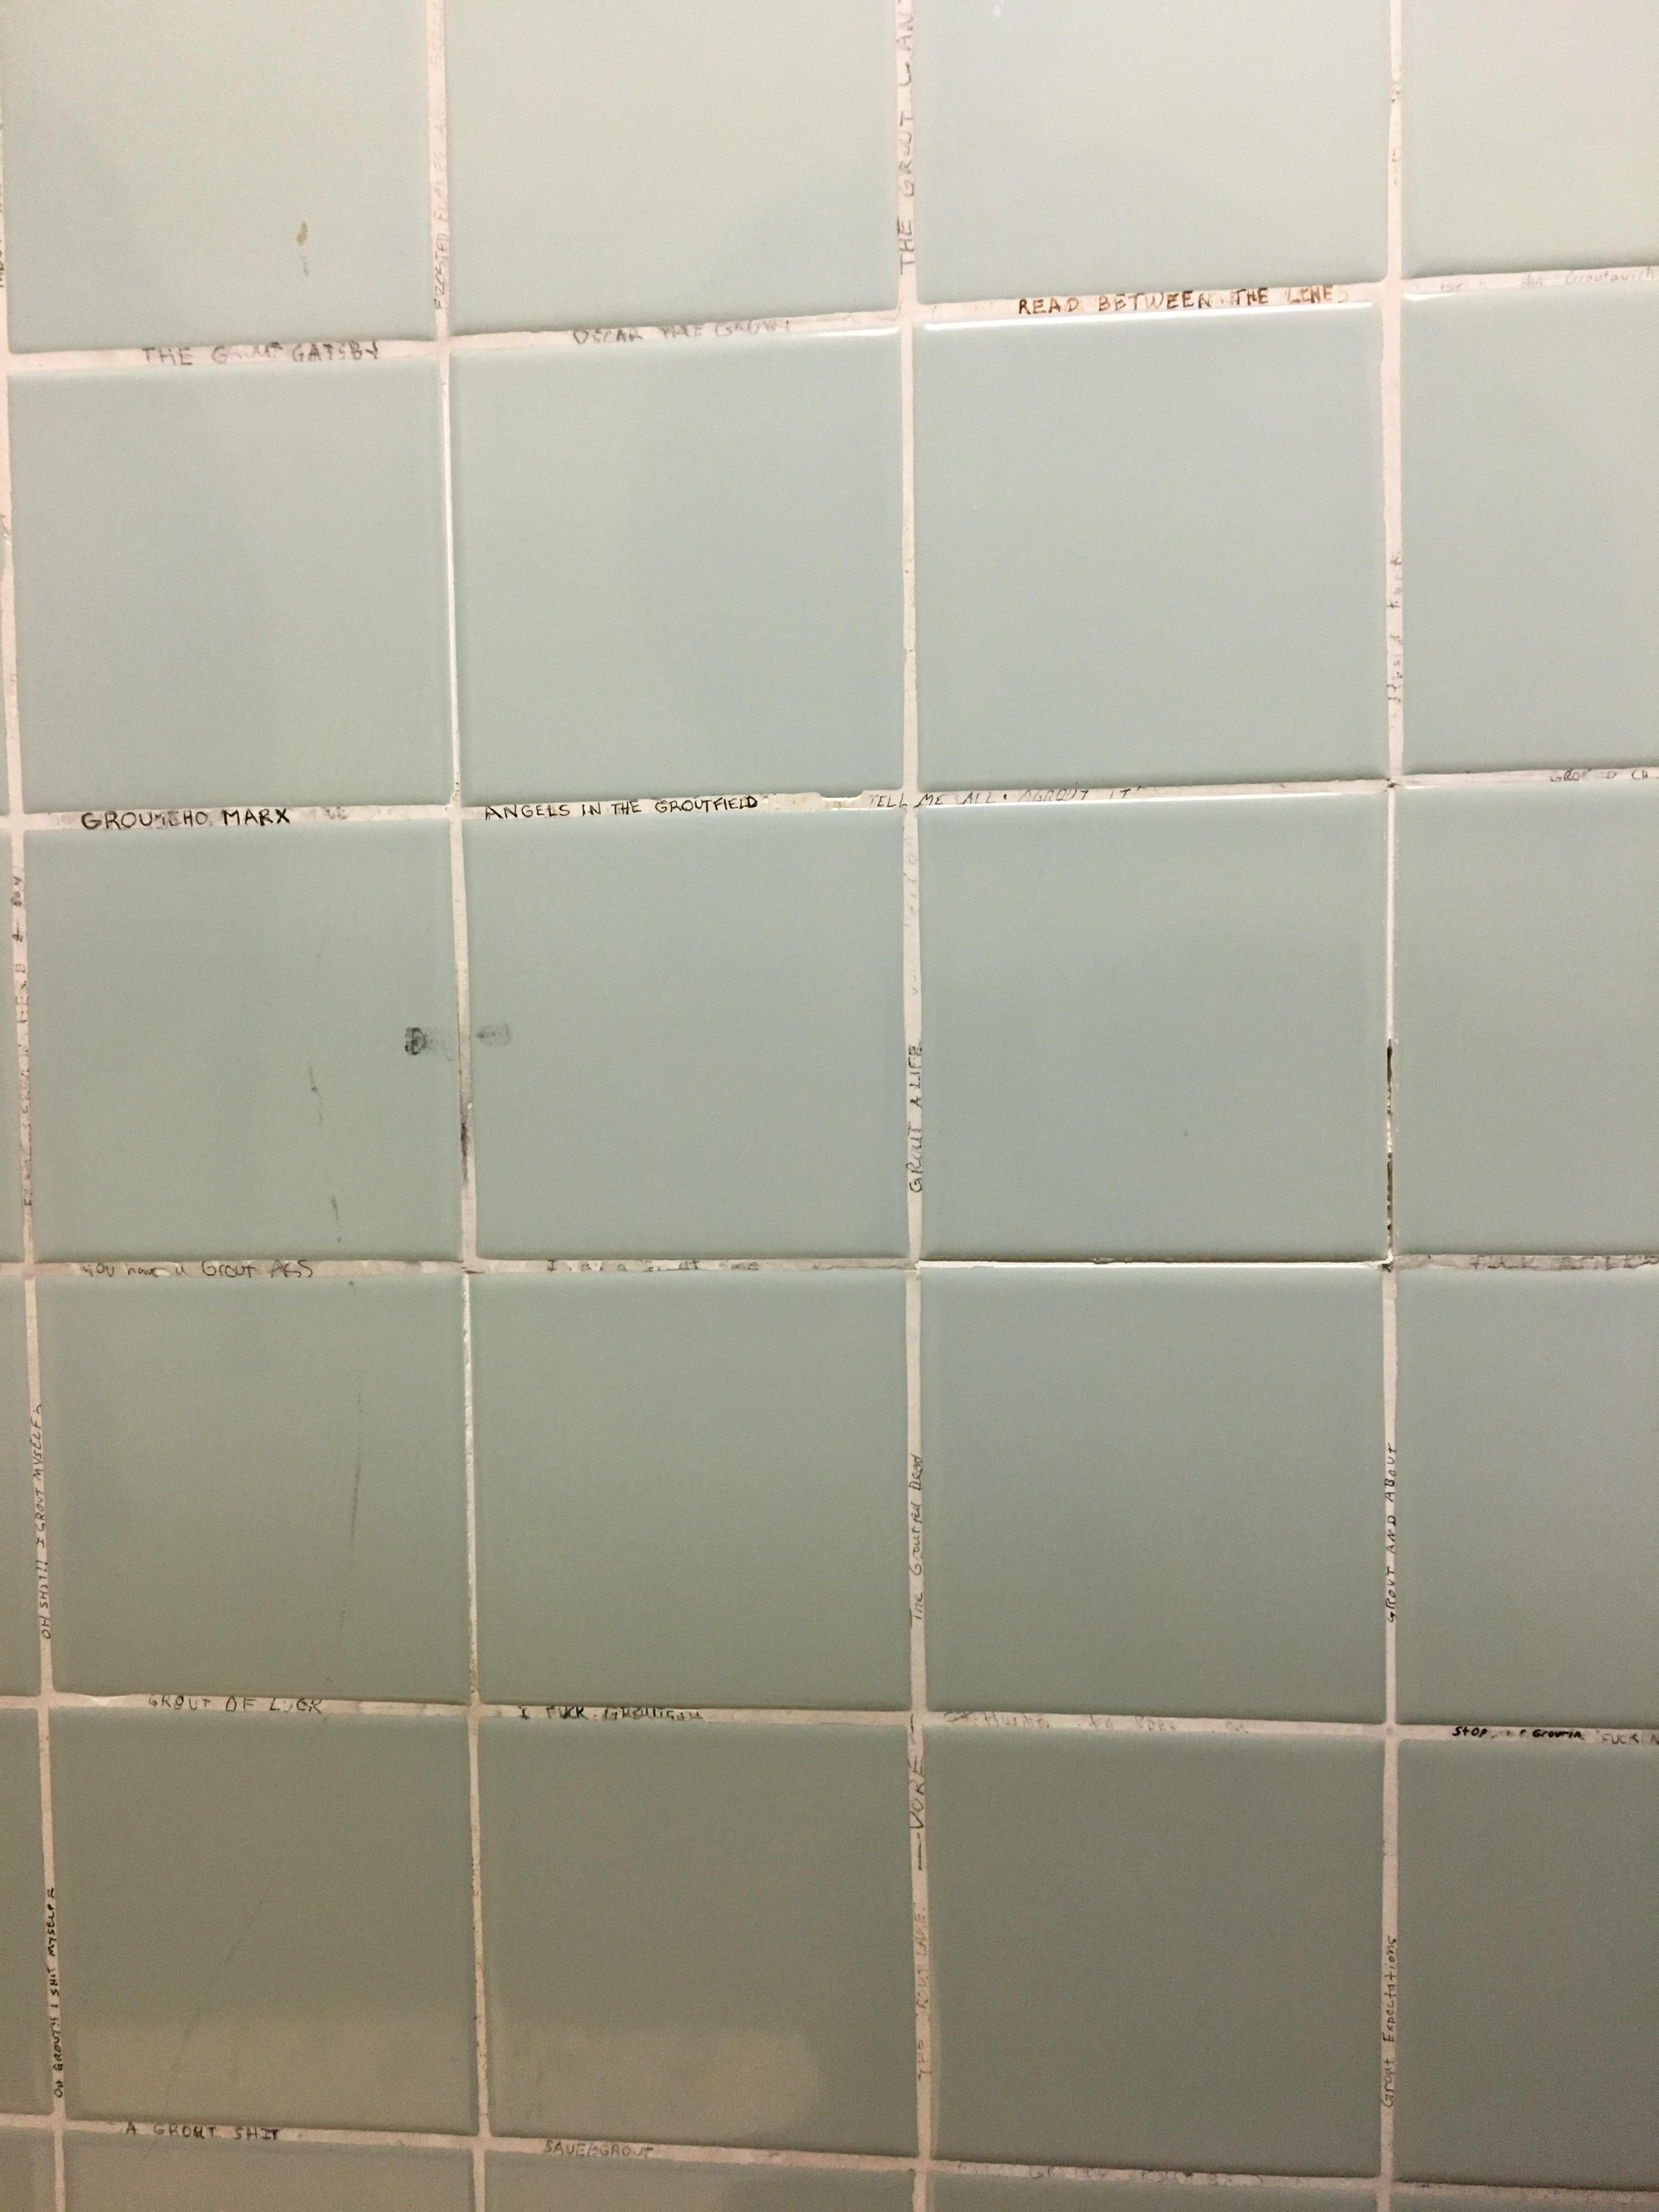 Bathroom Grout The Graffiti In This Bathroom Is Limited To Grout Puns On The